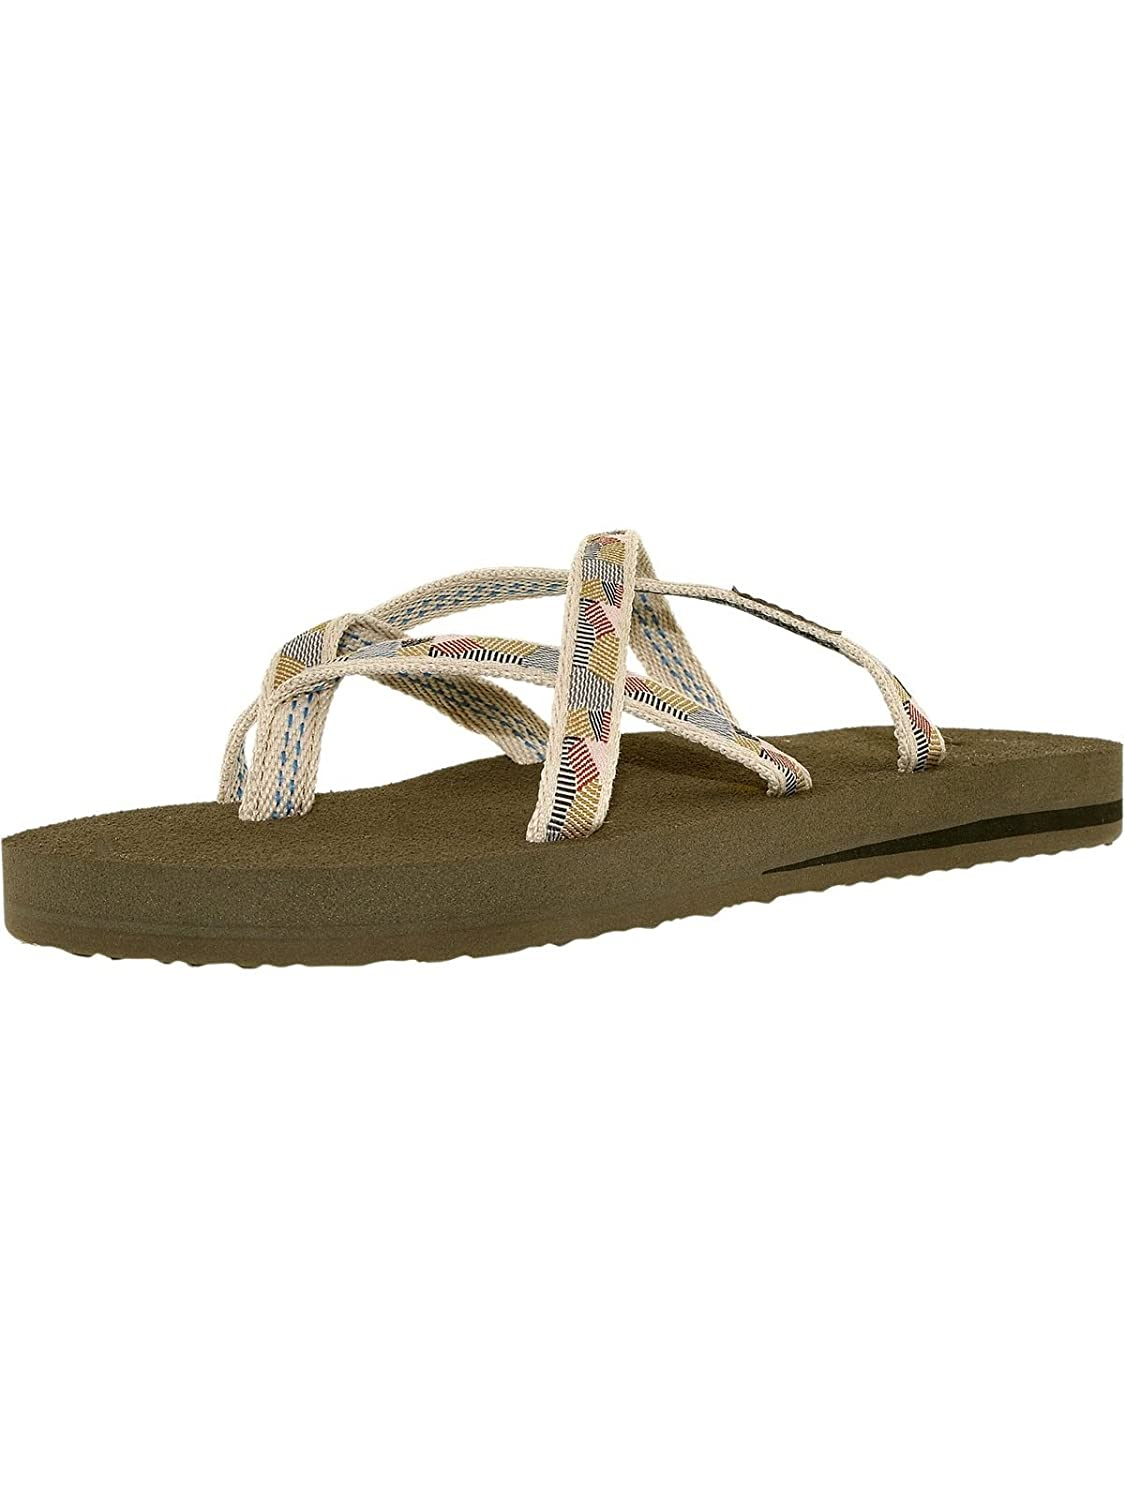 Teva Olawahu, Sandales femme femme Gold Waterfall-antique B07D9LT9HV Gold 94a1e4f - automaticcouplings.space